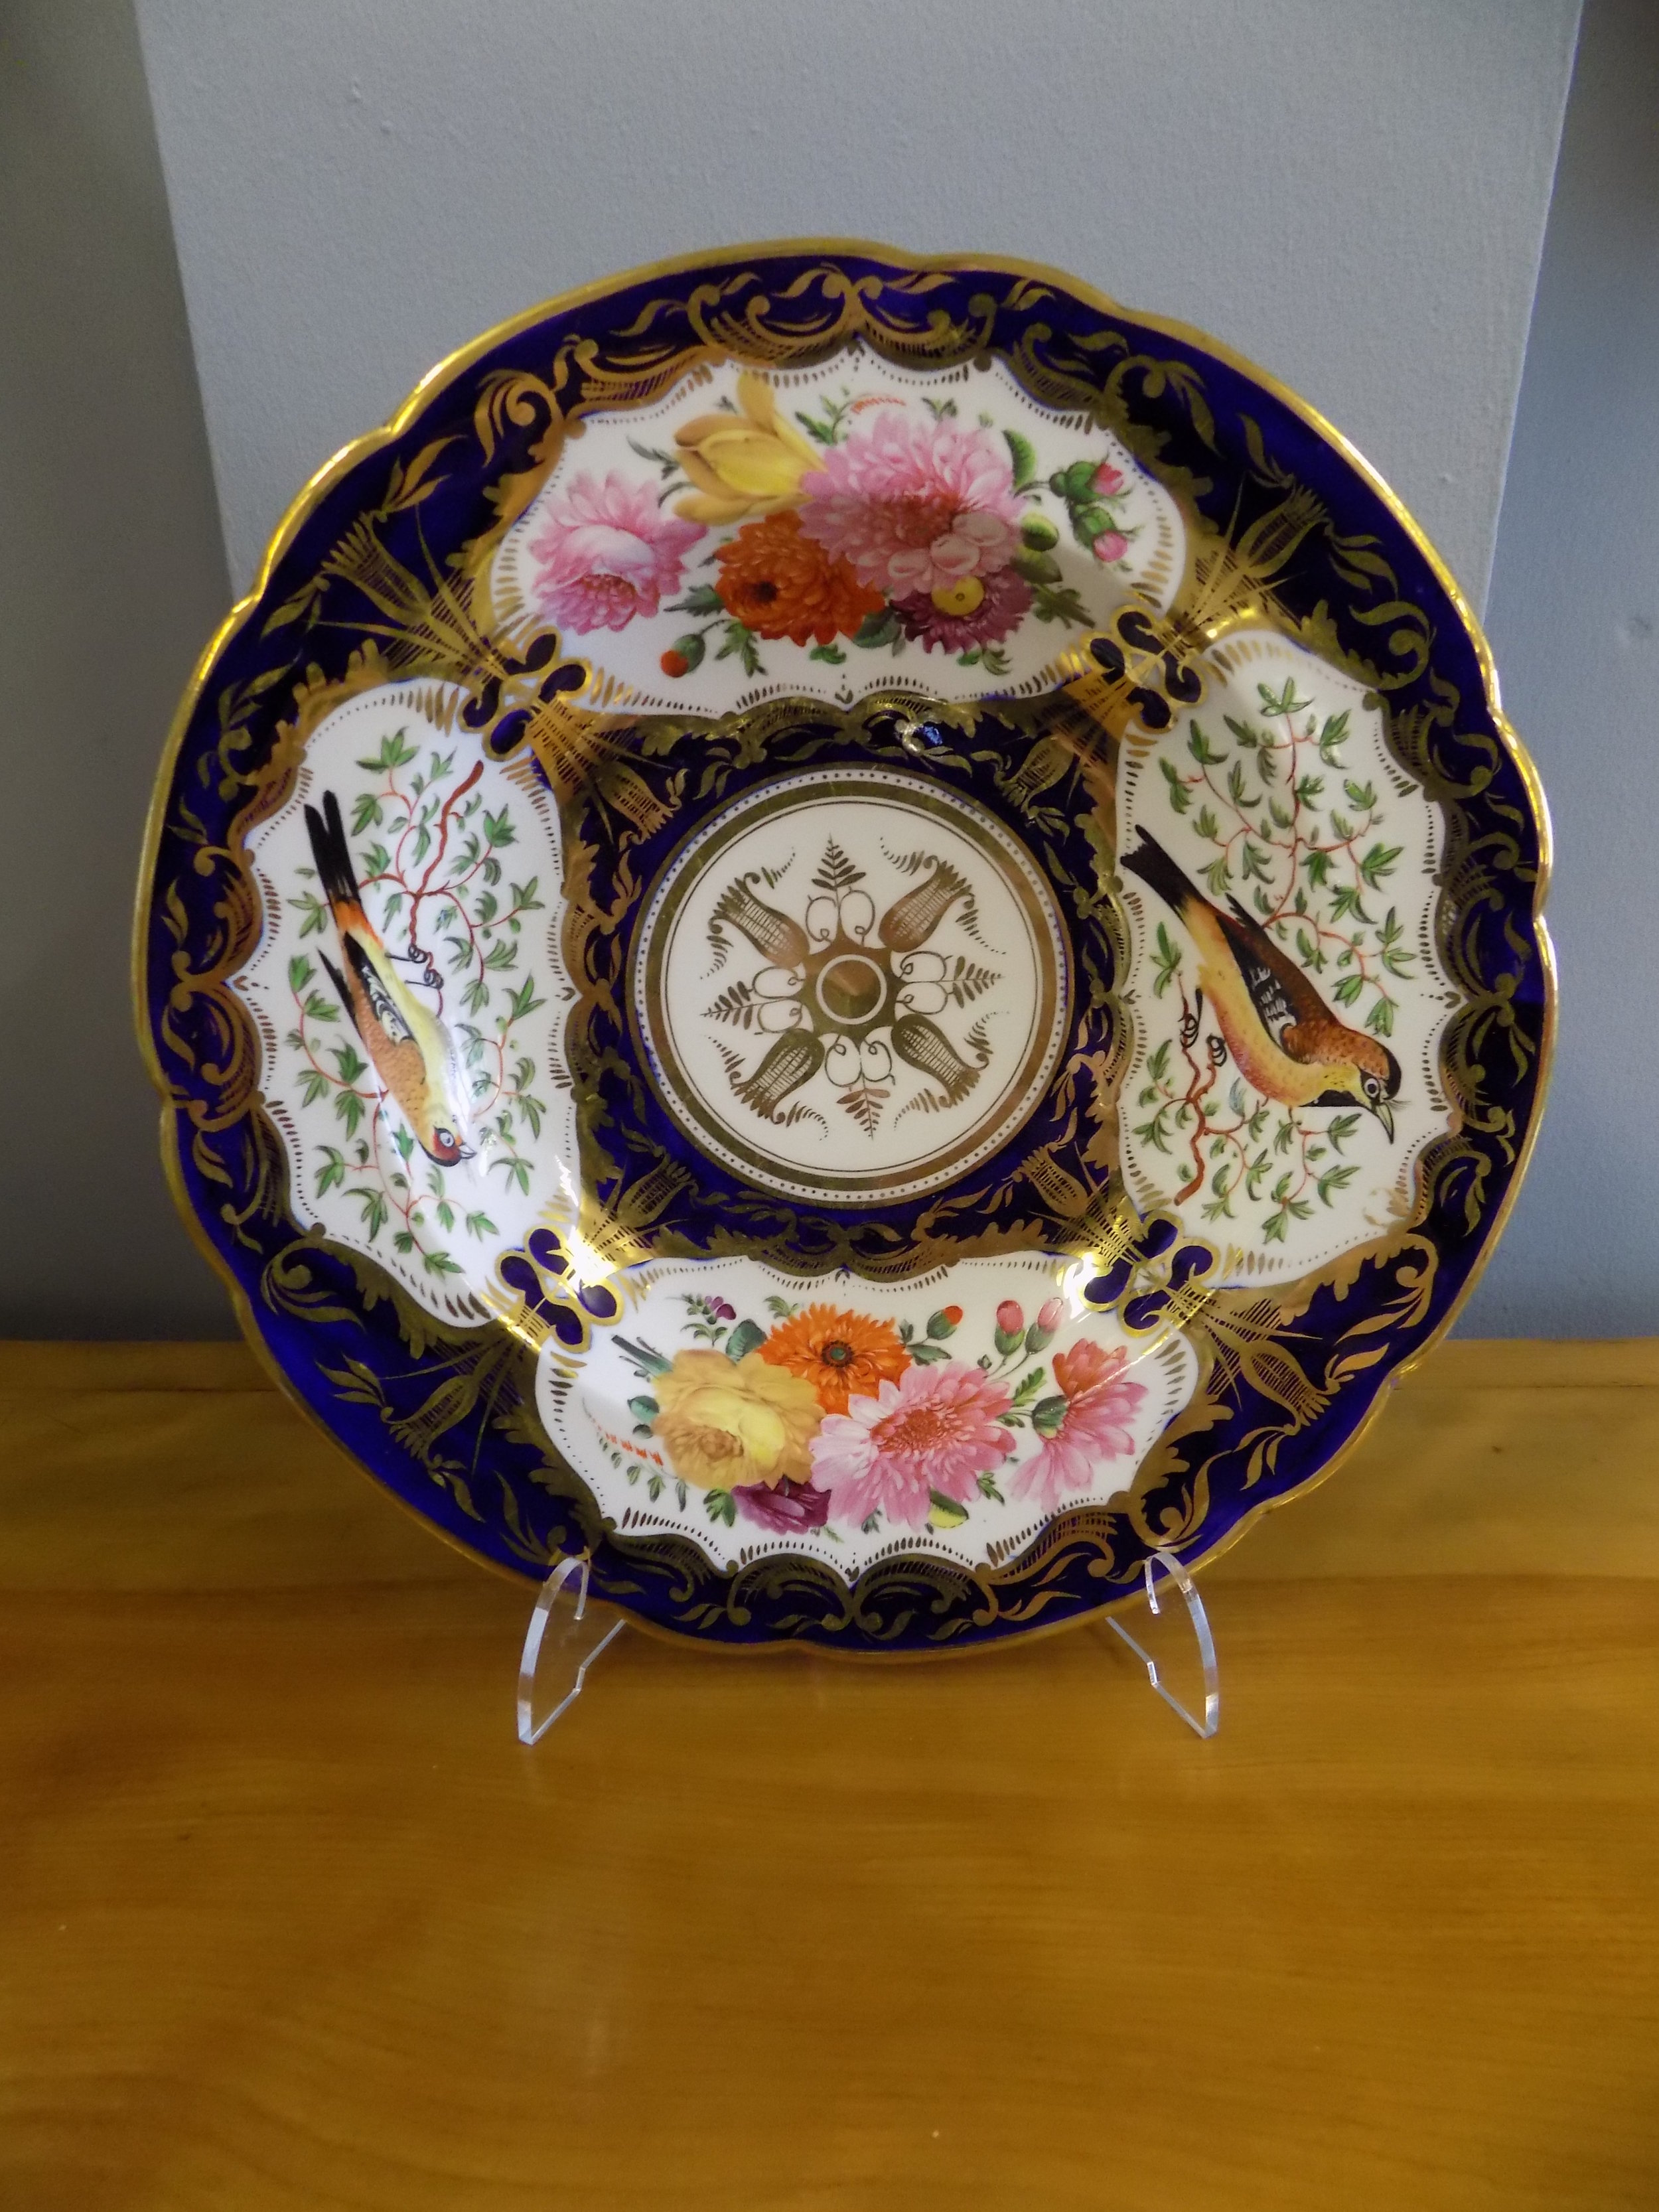 Coalport Porcelain plate early 19th century £235.00